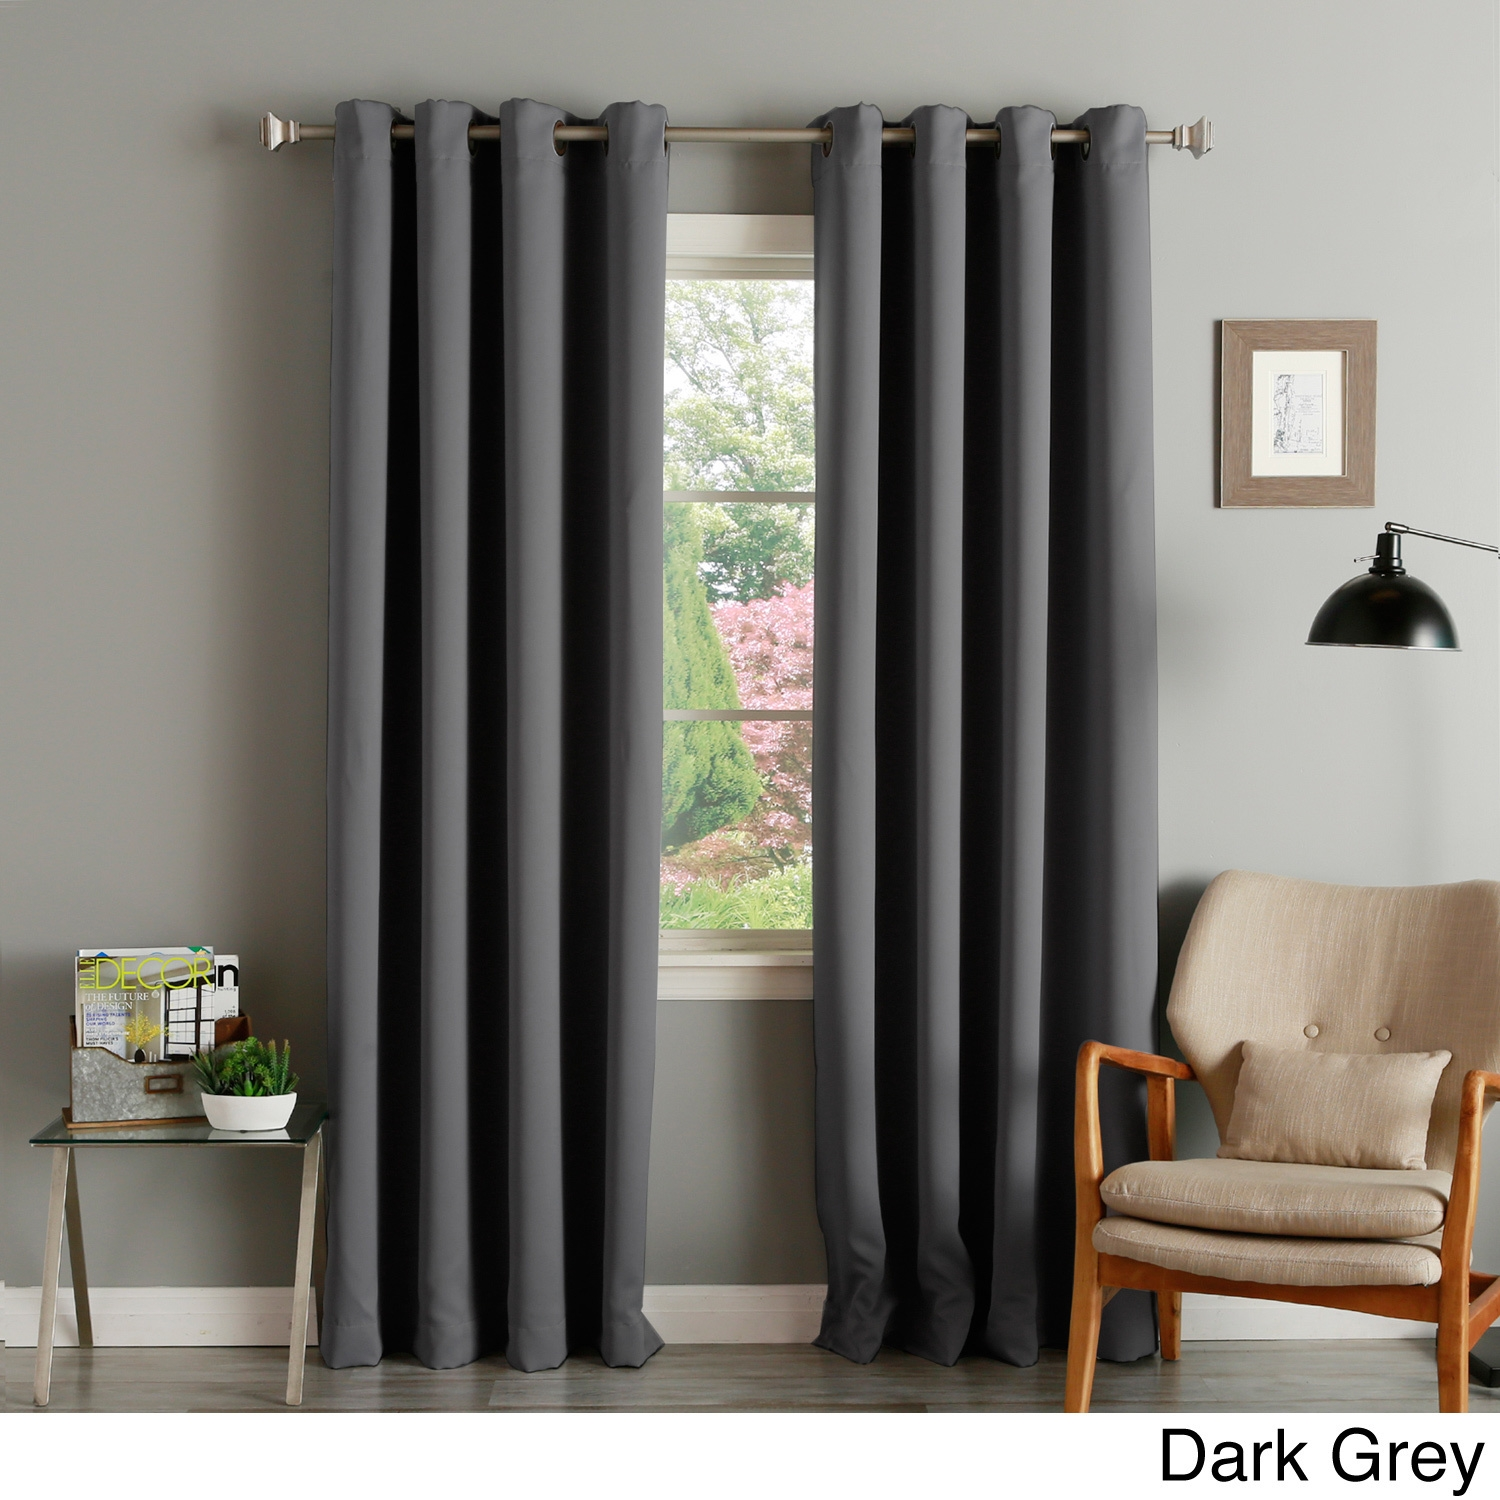 Window Dress Up Your Windows With Best Walmart Curtain Design Regarding Dark Grey Sheer Curtains (Image 25 of 25)